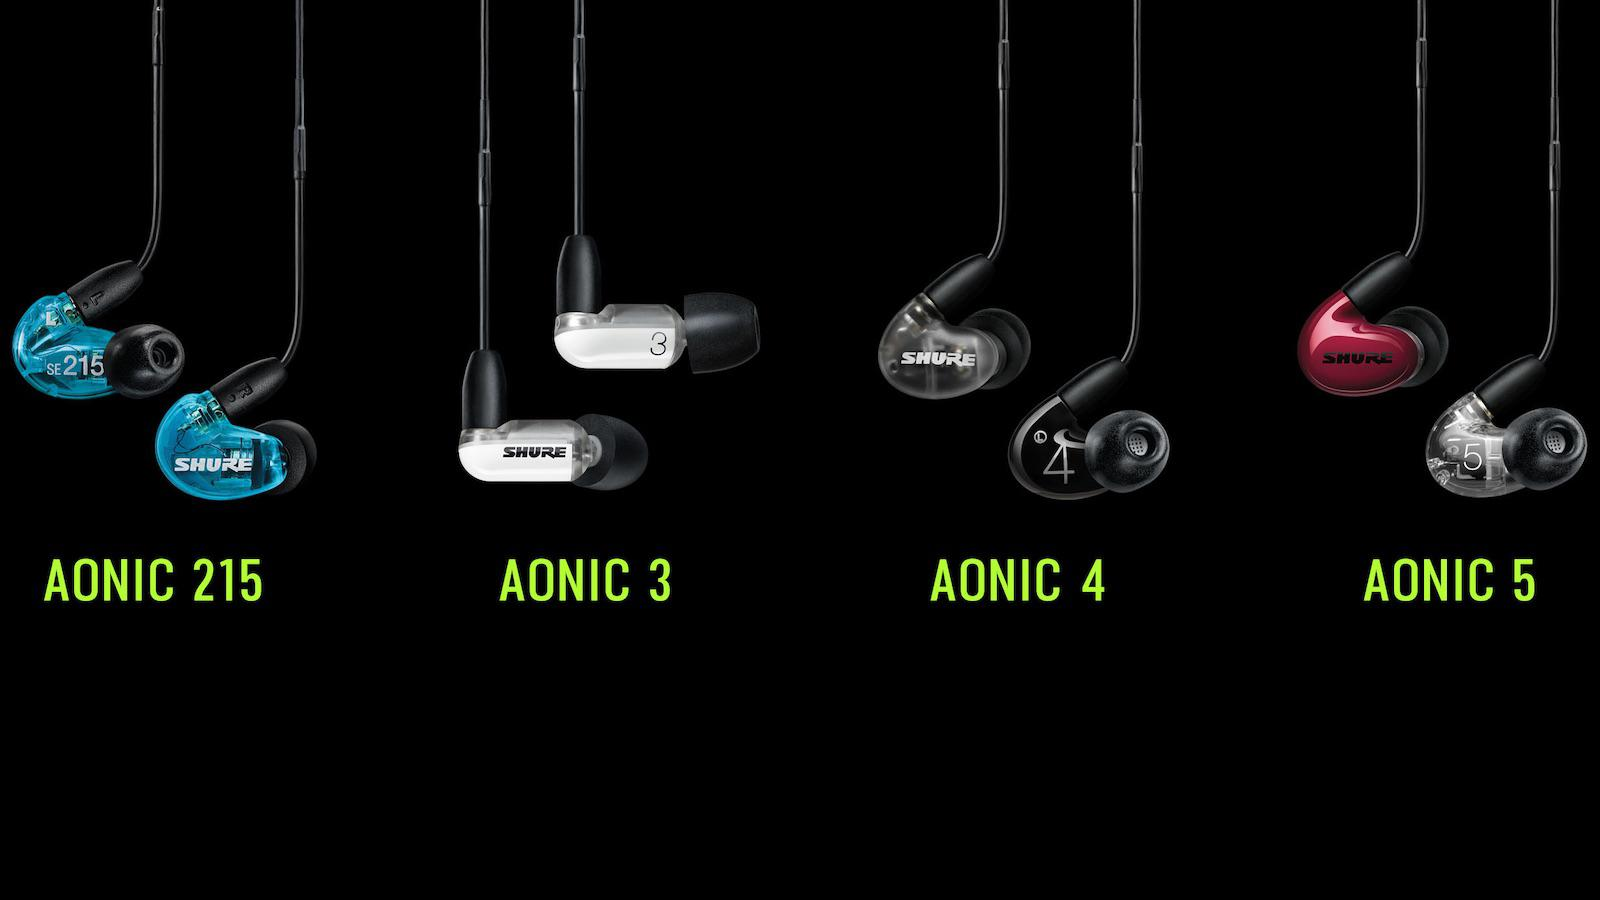 Shure AONIC 215, 3, 4, 5 In-ear Headphones